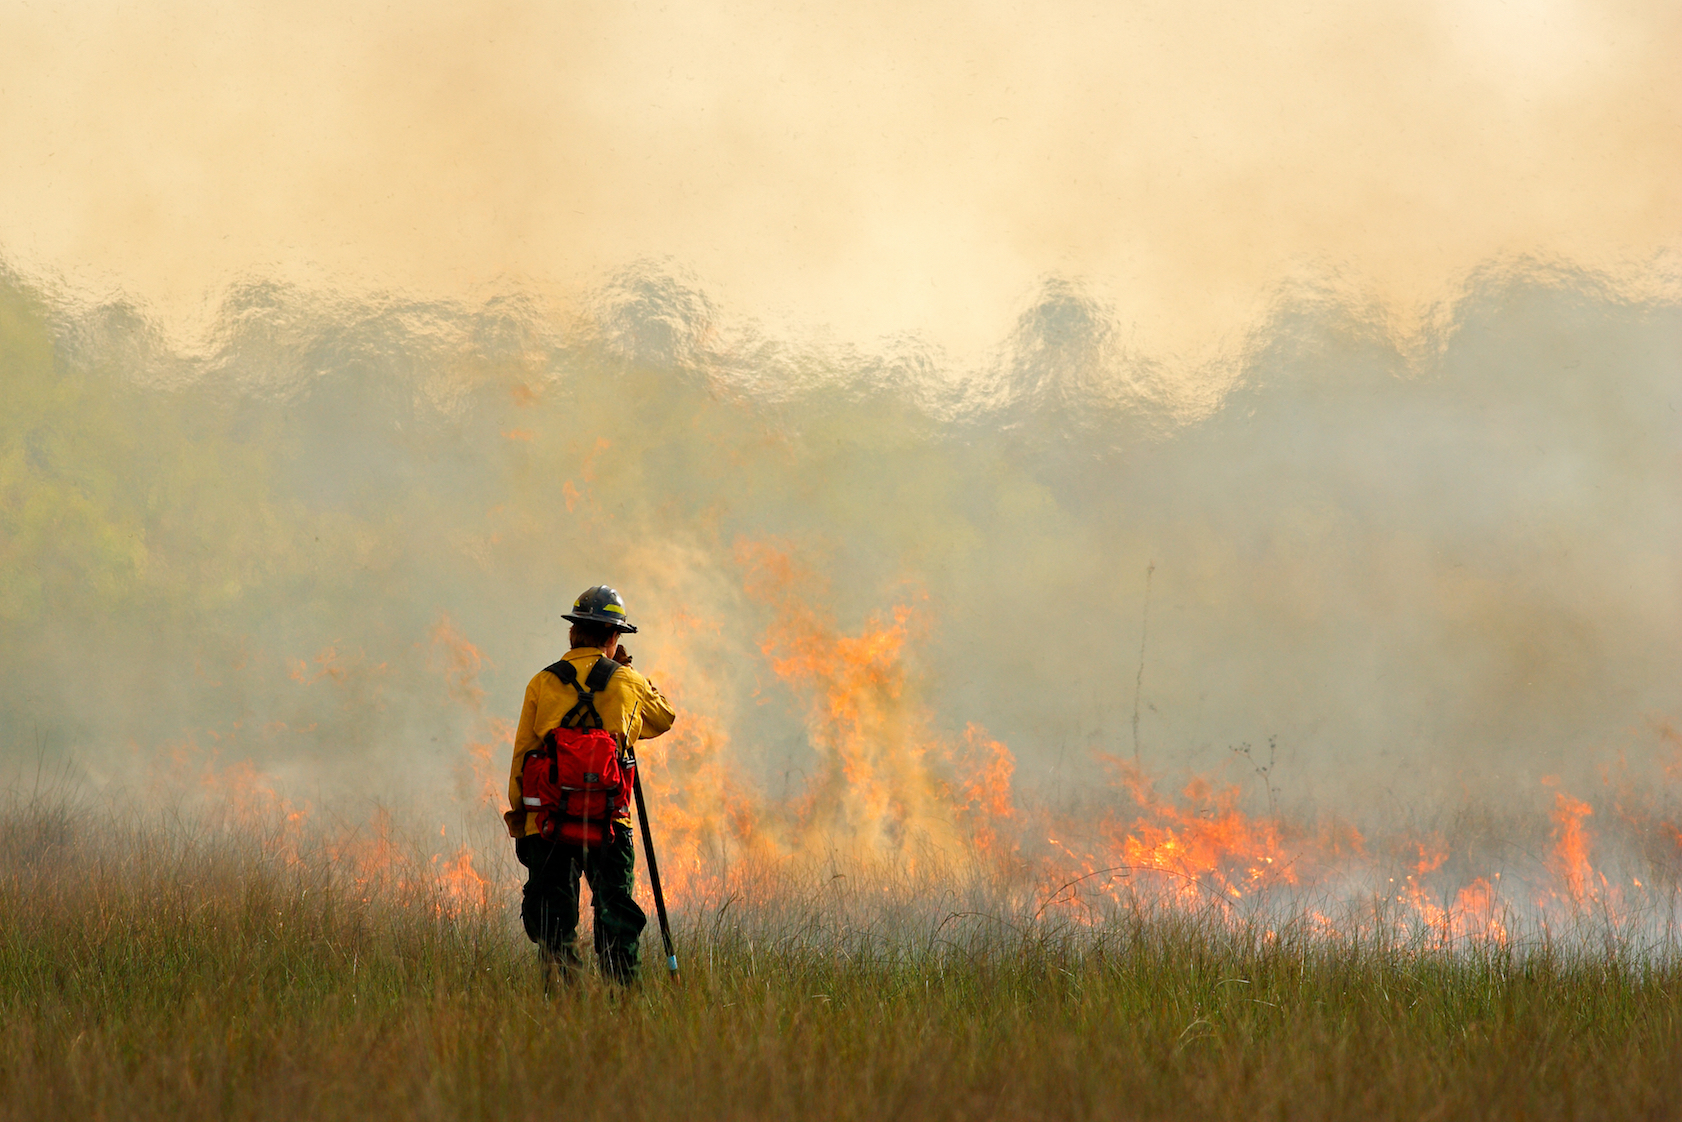 Open grasslands and the wildfires that sustain them have been greatly reduced over the last 20 years due to a big increase in agriculture.